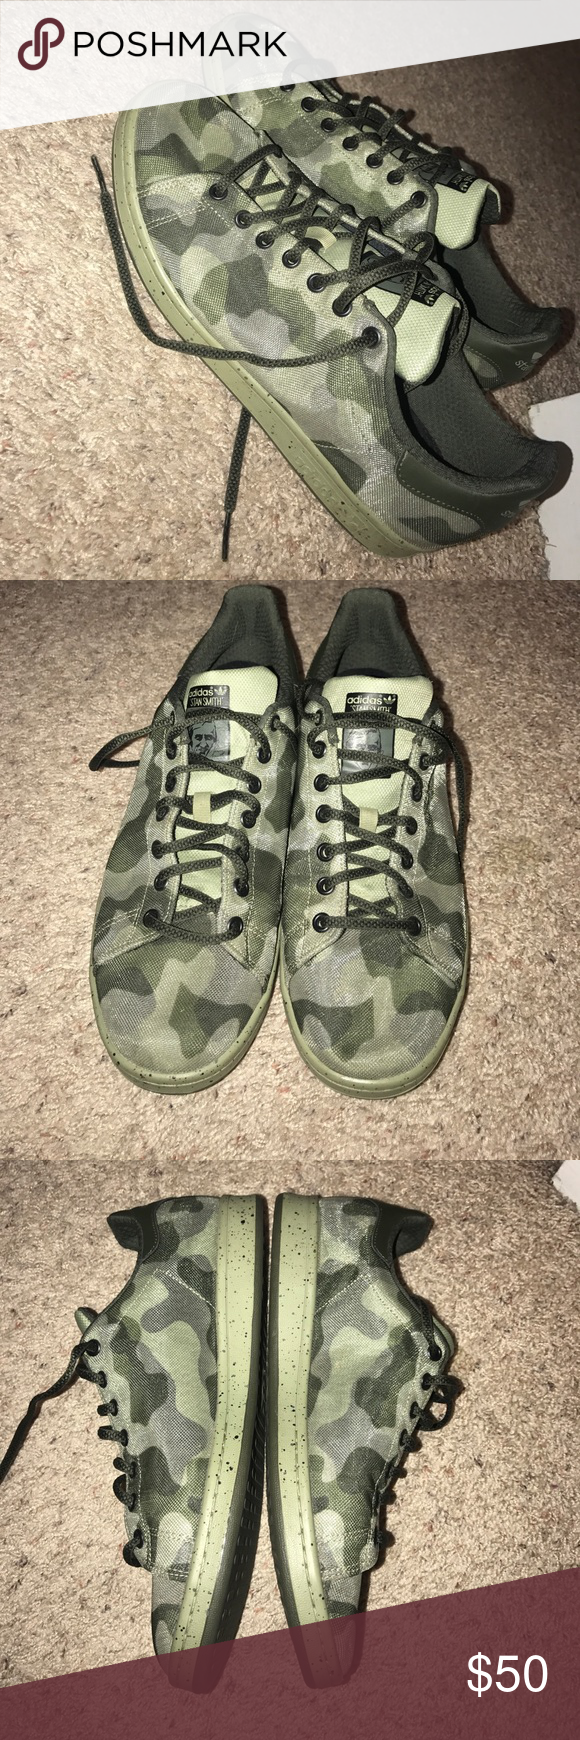 online retailer 4e994 624f6 New. Adidas camo Stan Smith 11.5M New (worn once) Adidas camo Stan Smith.  11.5M. Perfect shoe to dress up or just throw on and go.